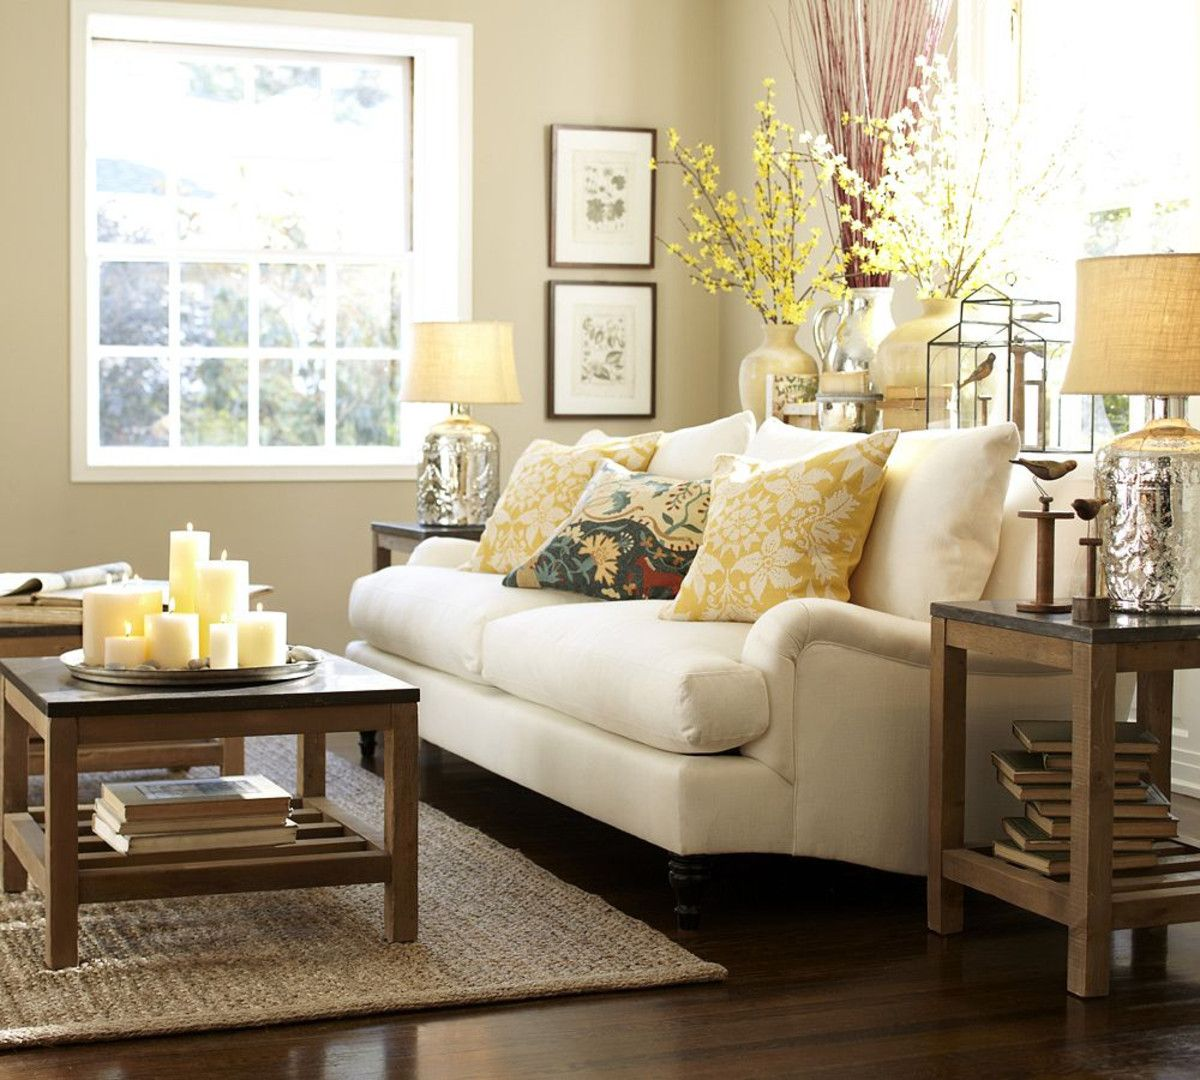 Carlisle upholstered sofa decorating tips pinterest carlisle